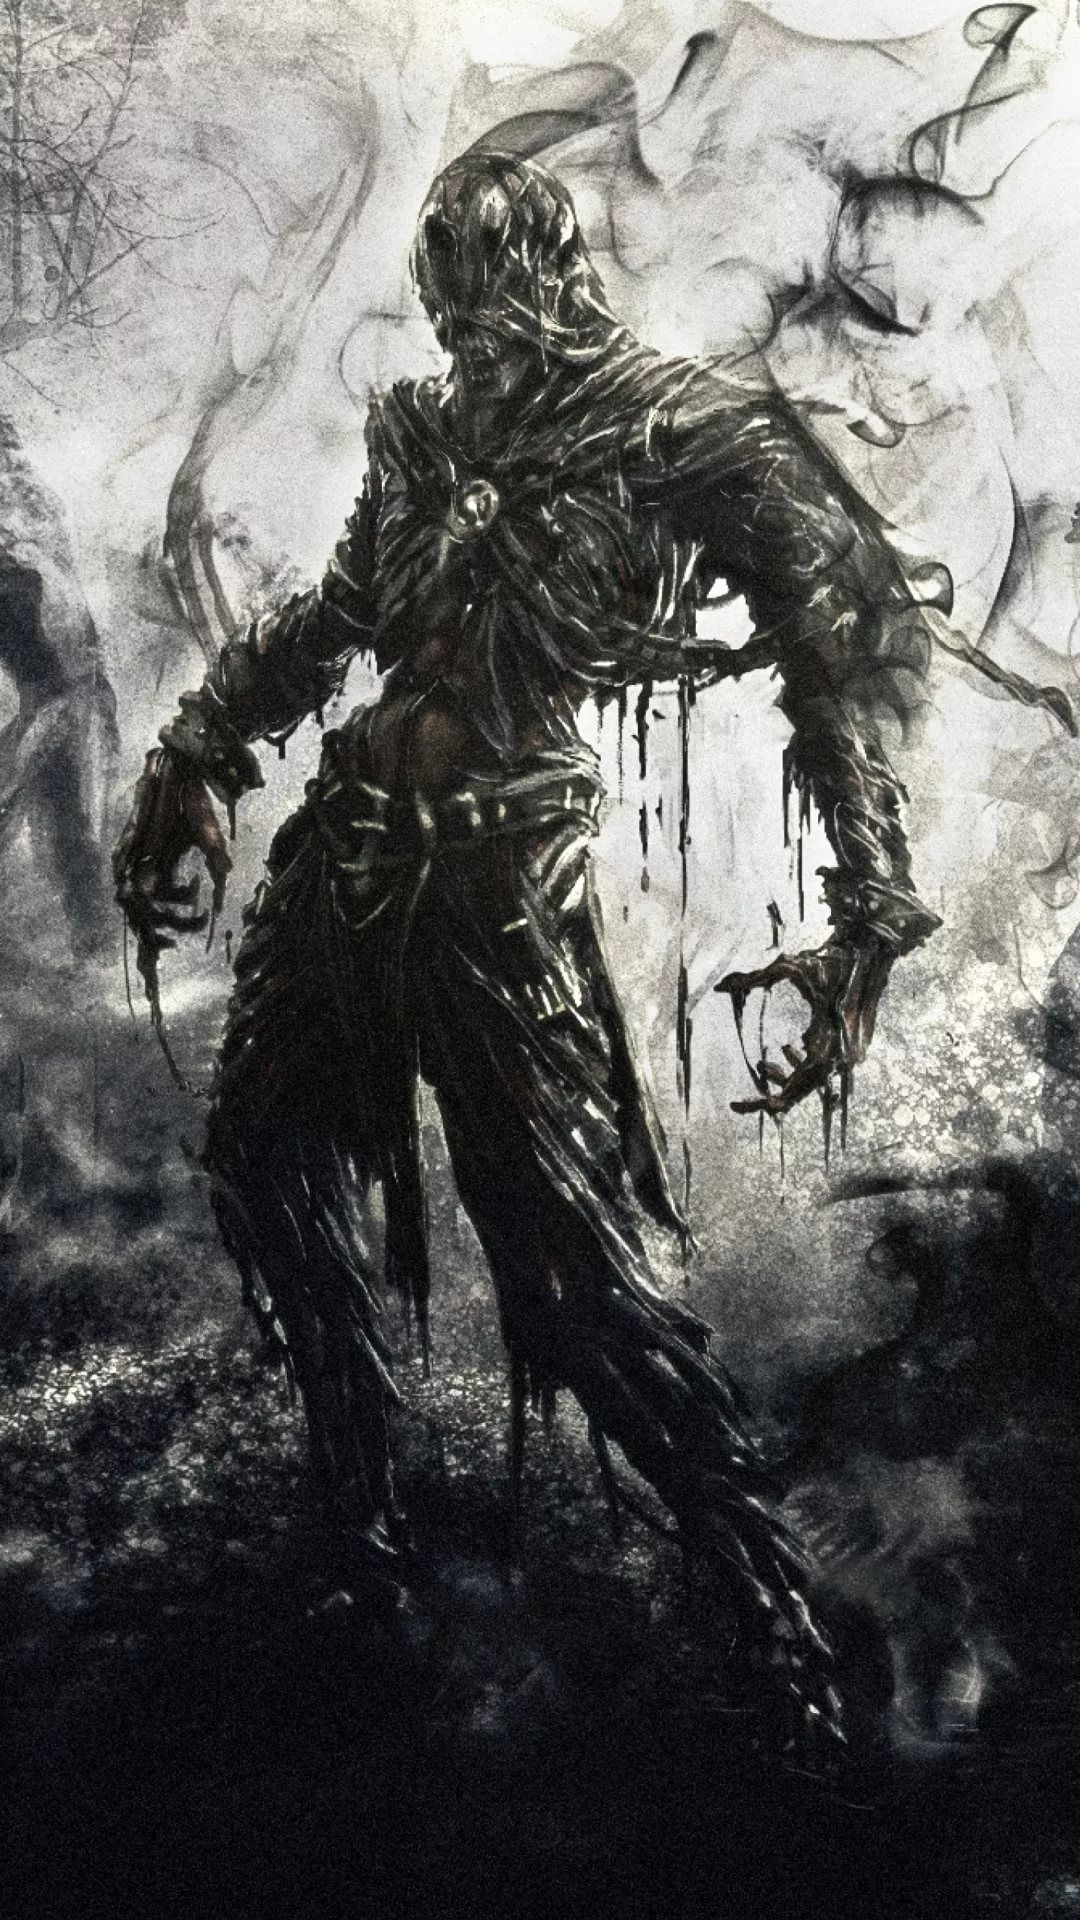 Zombie Hd Wallpaper Android zombie hd in 2020 Art